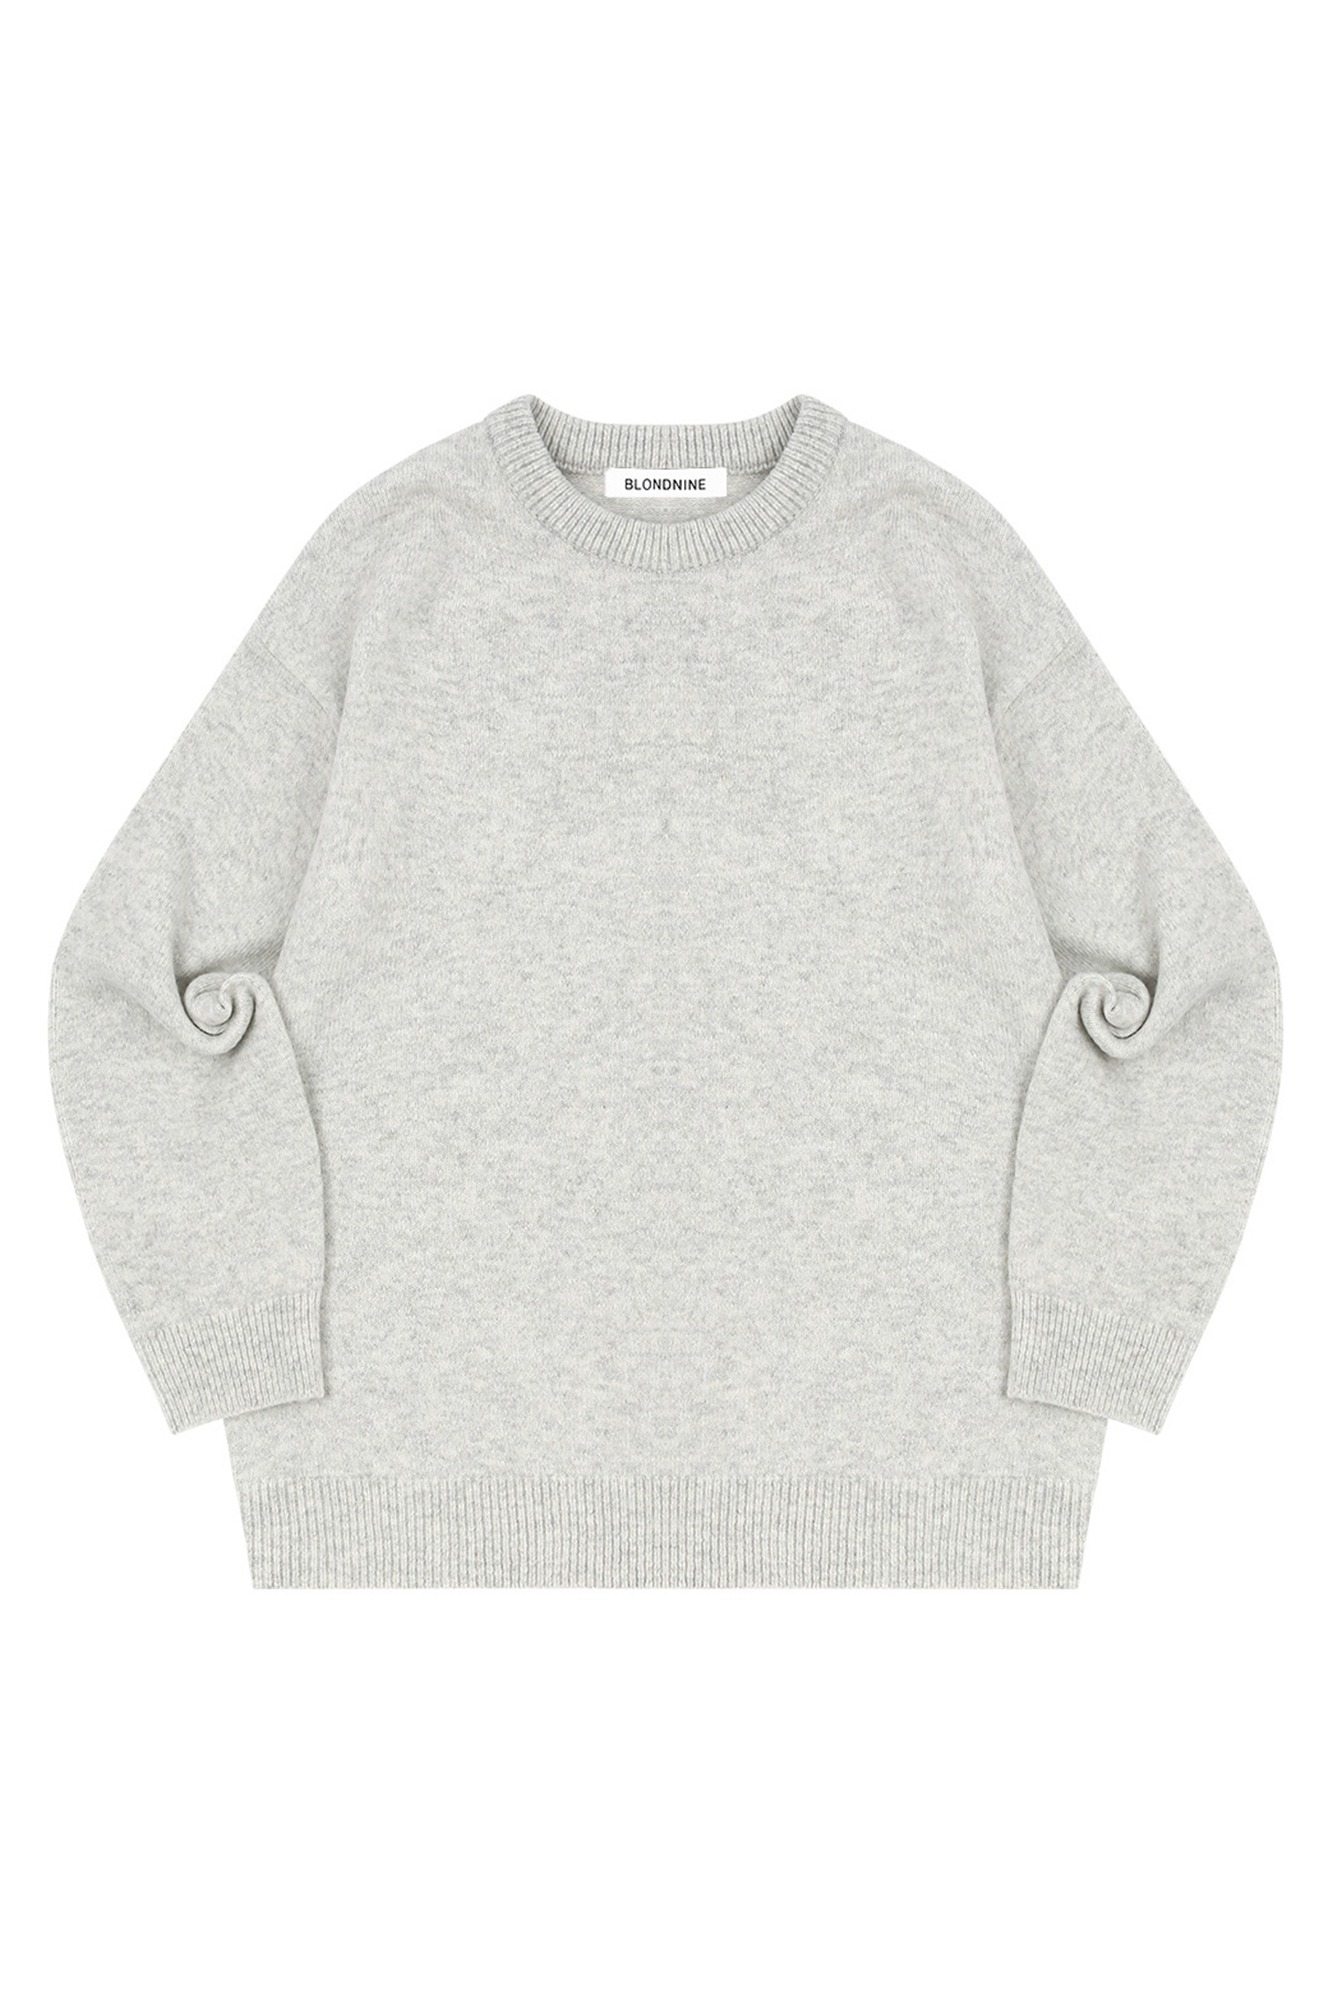 MELANGE ROUND NECK SWEATER_LIGHT GRAY